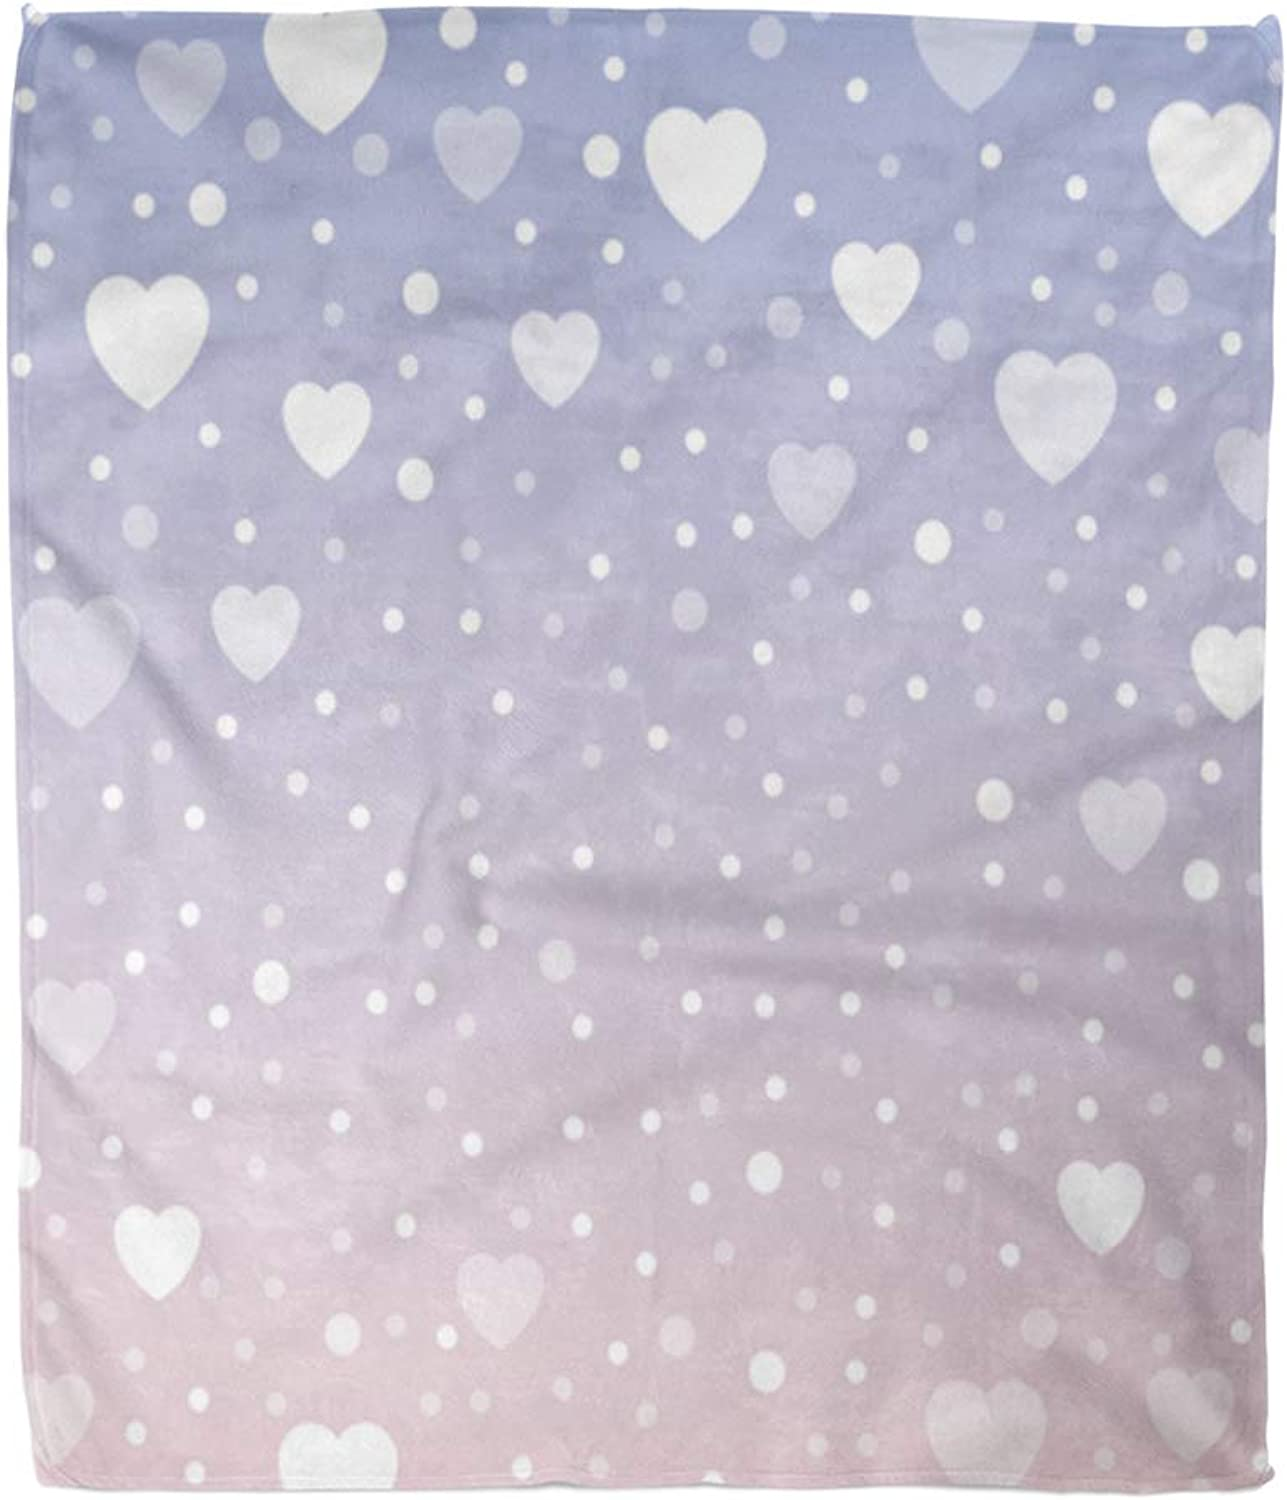 Emvency Throw Blanket Warm Cozy Print Flannel Pink Hearts Great for Baby Birthday Celebration Greeting and Mother's Day Book Comfortable Soft for Bed Sofa and Couch 50x60 Inches